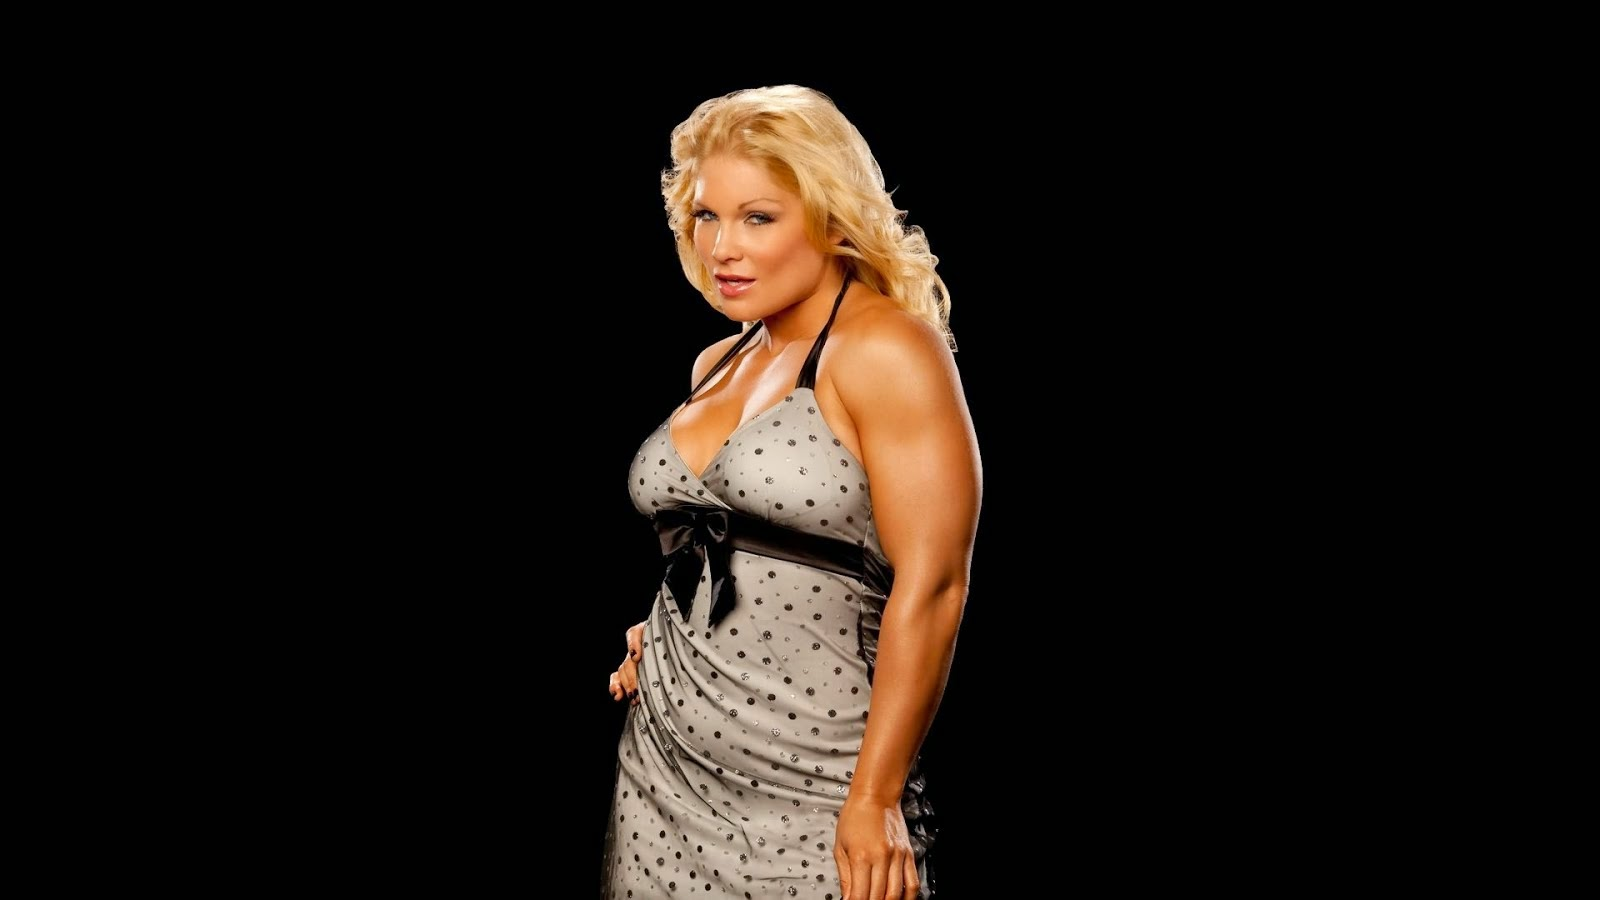 Wwe diva wallpaper downloads wallpapersafari - Wwe divas wallpapers ...